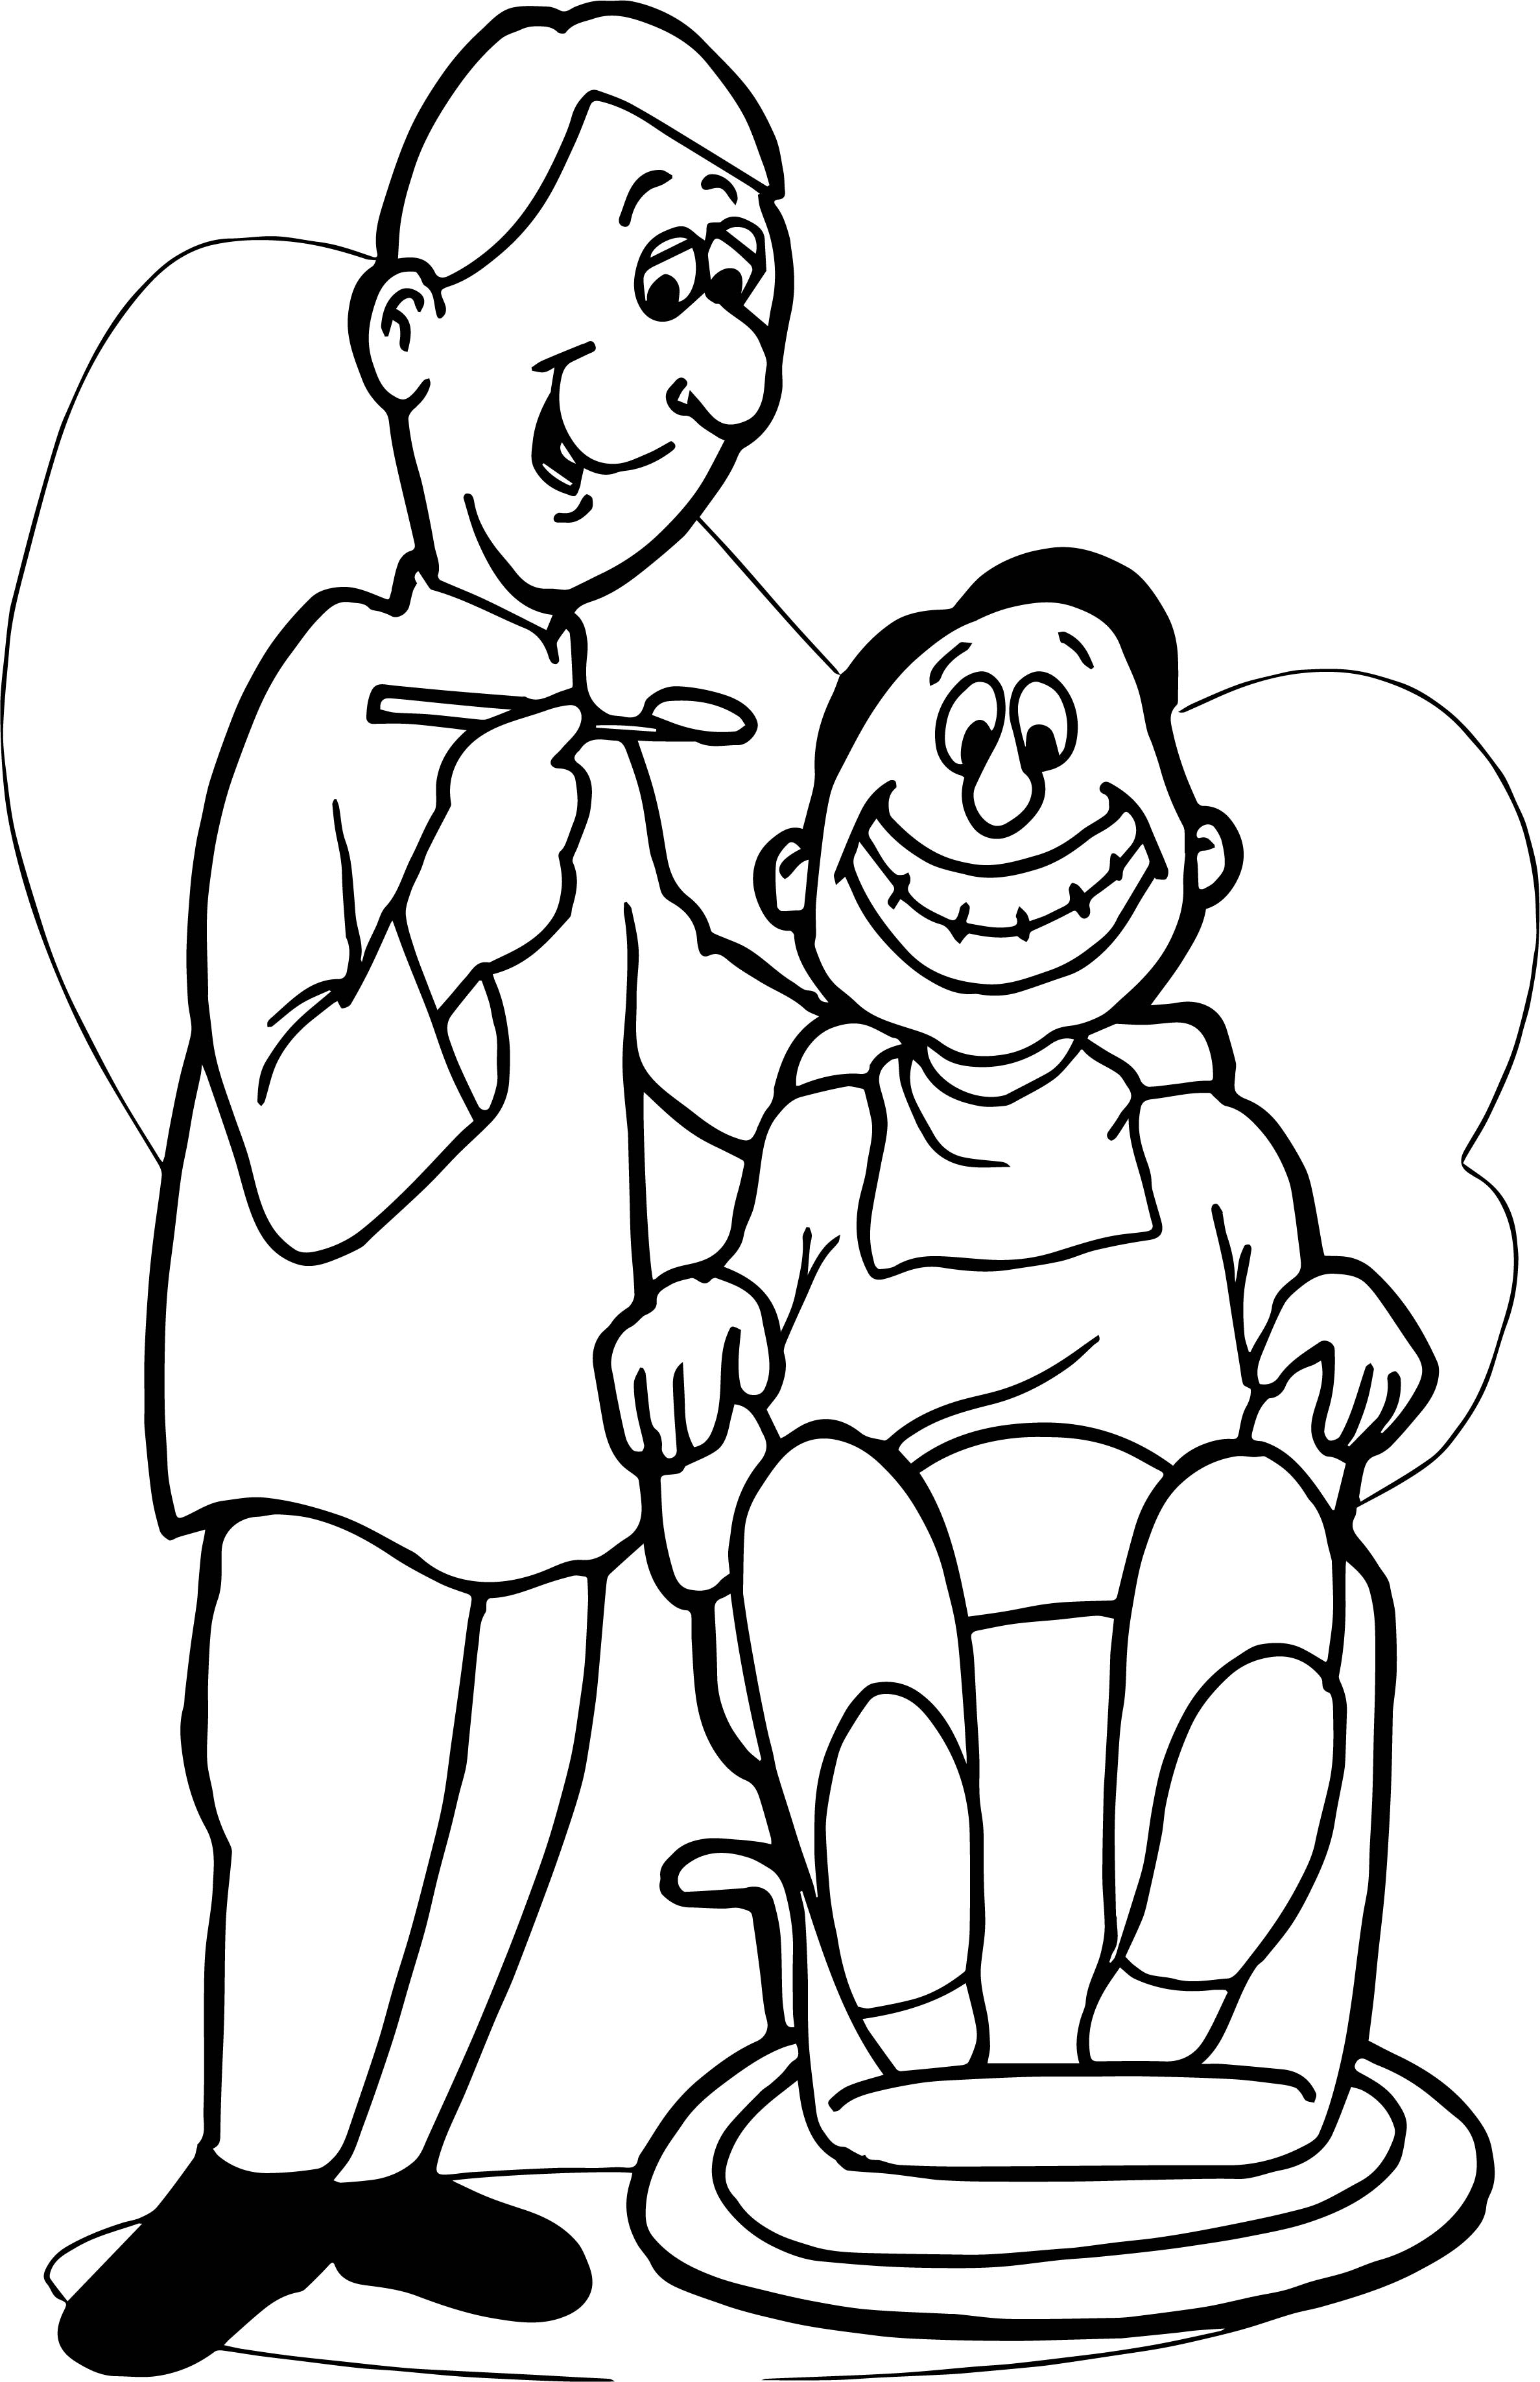 Fine Milkshake Coloring Pages Mold Ways to Use Coloring Pages Download Of Latest Dental Health Coloring Sheets Healthy Pages My Plate Dairy to Print